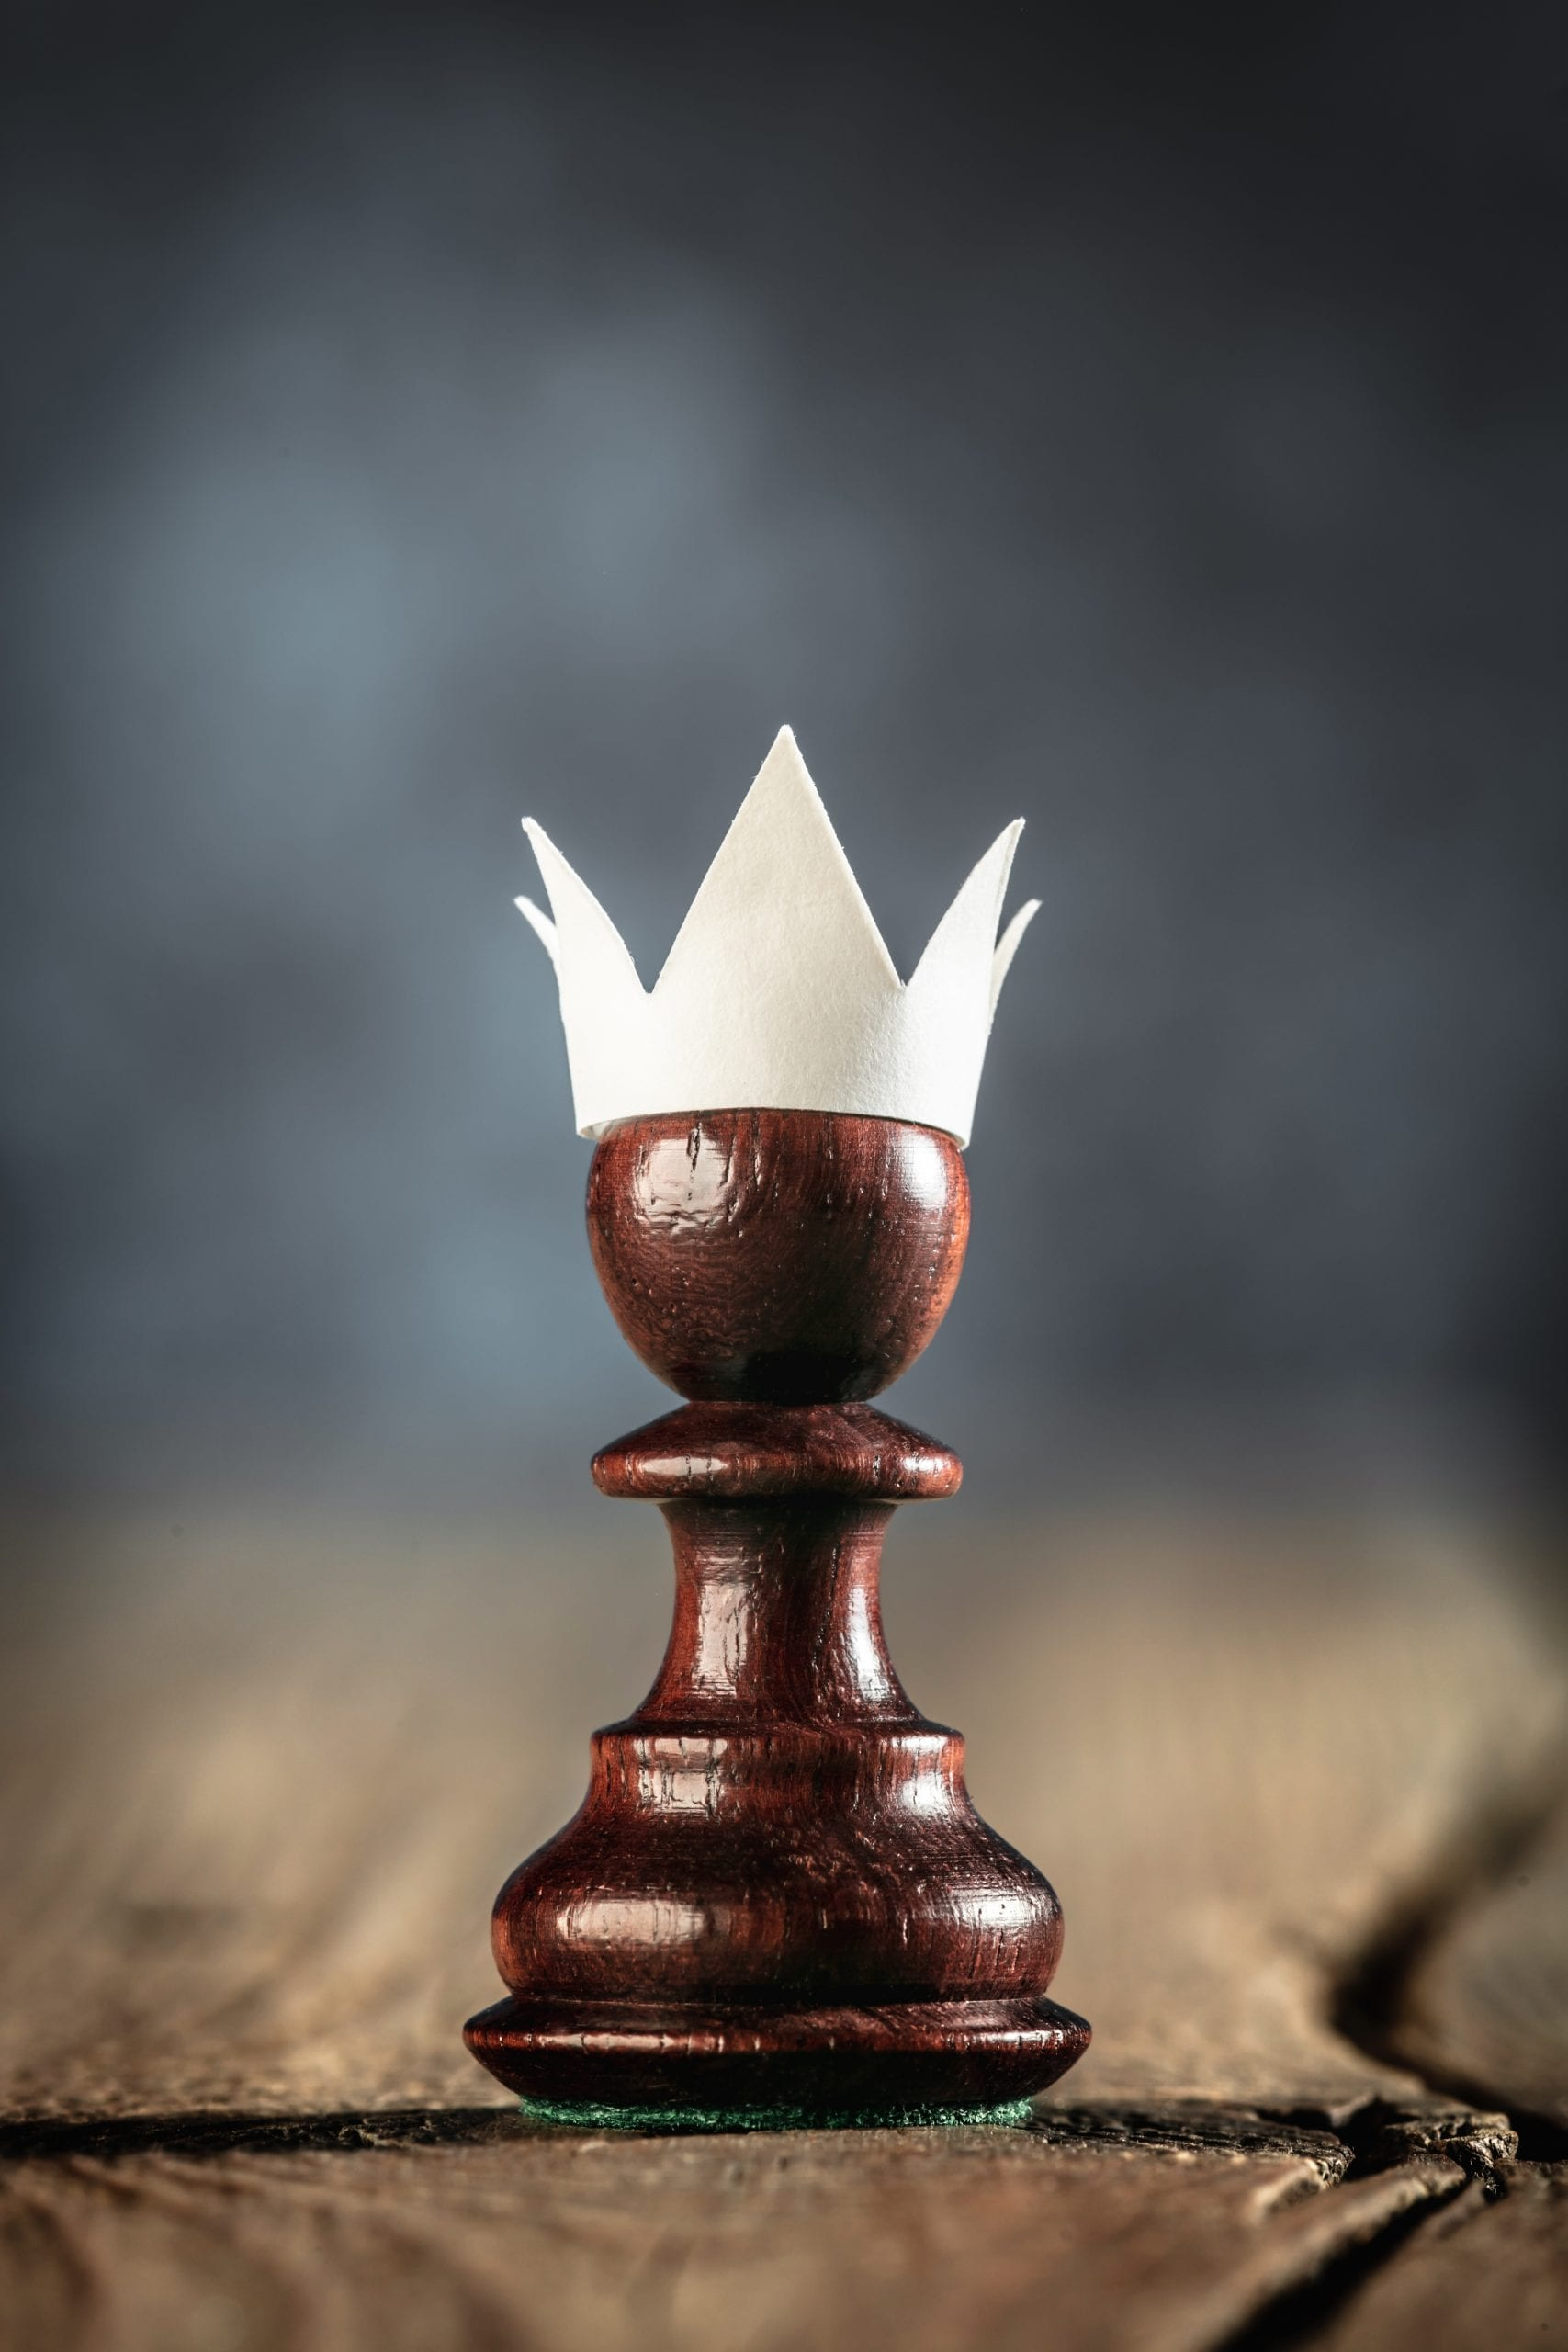 Small Ambitious Pawn With Fake Paper Crown Costume On Wooden table – Business Entrepreneur Concept